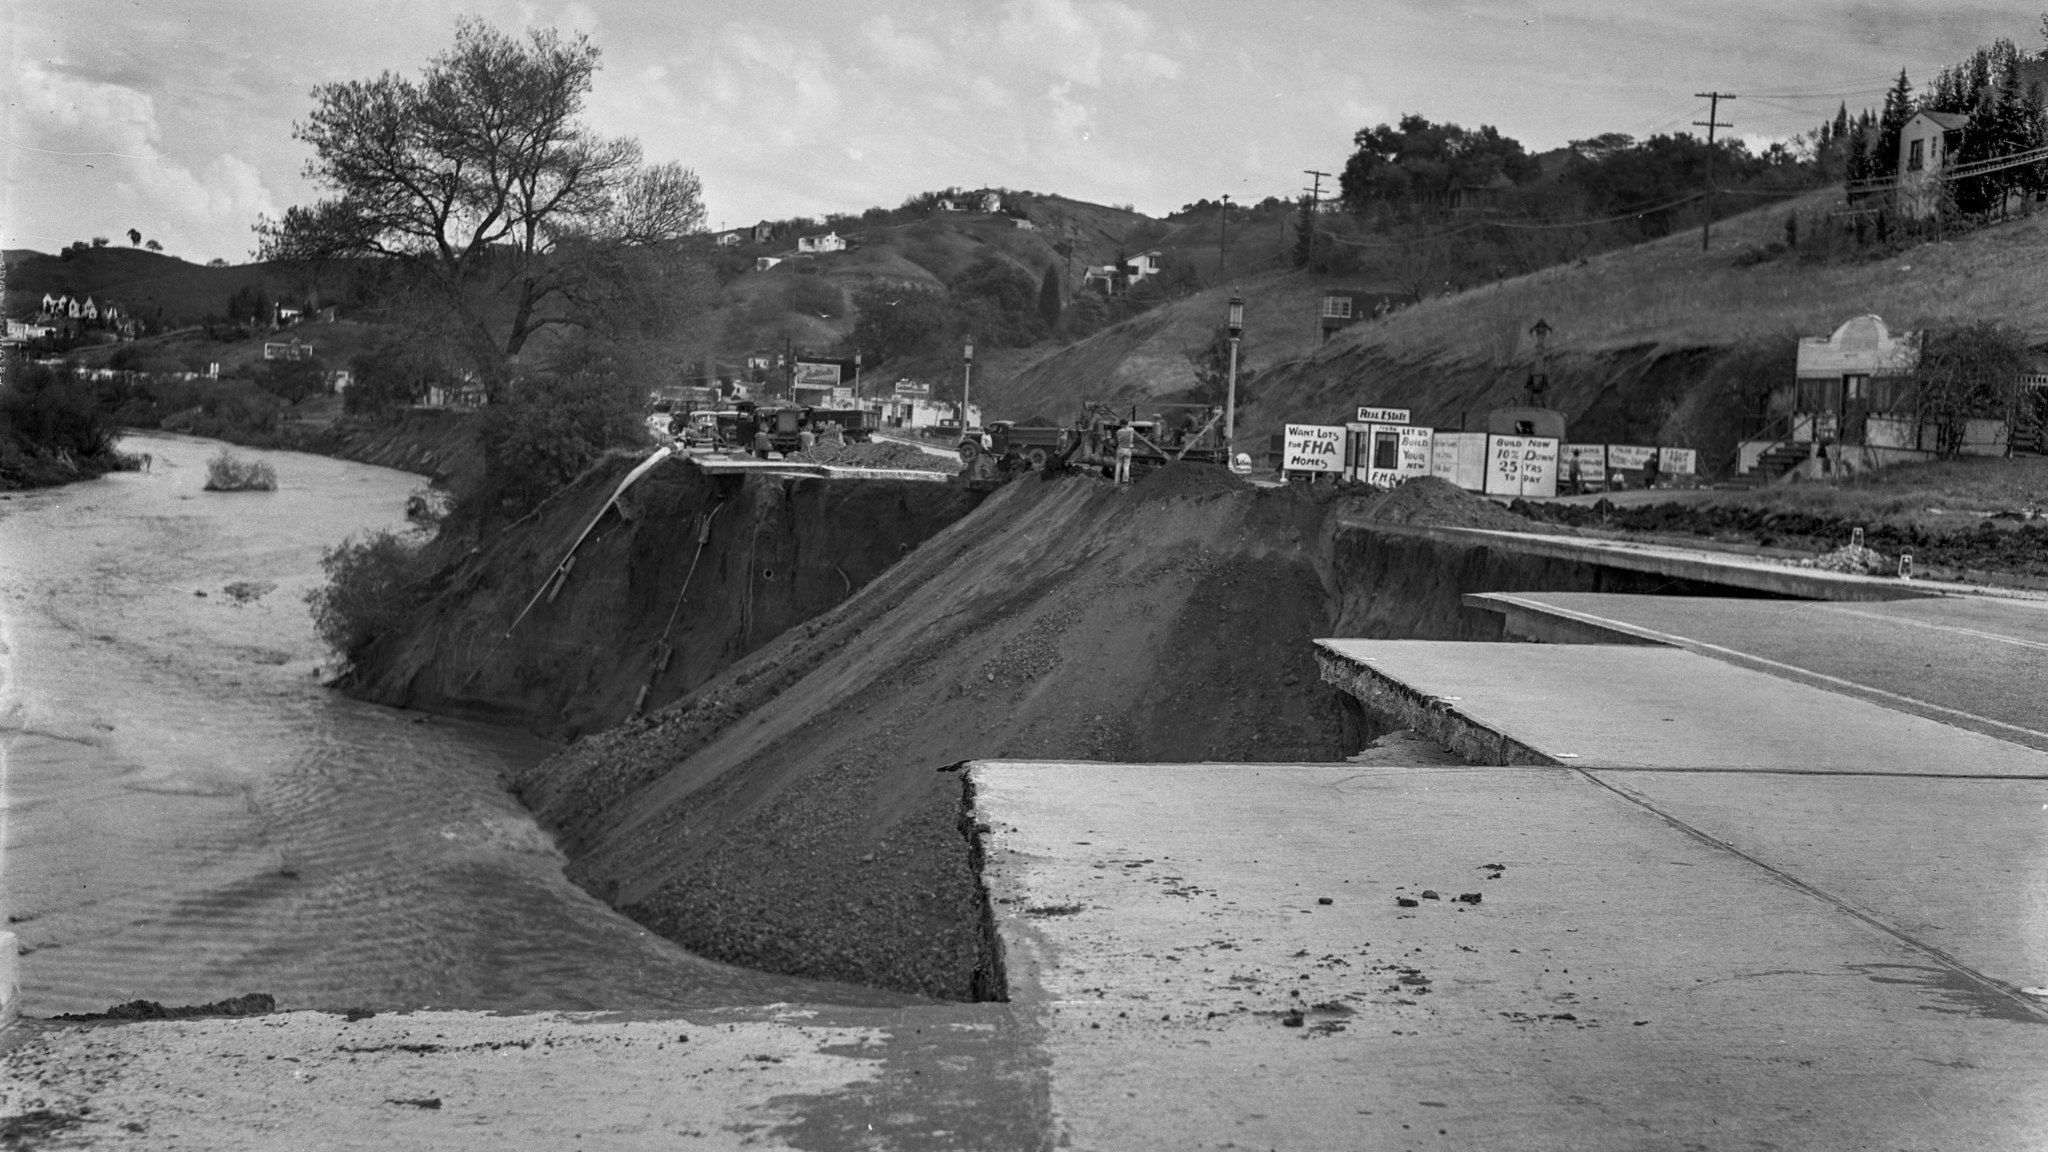 March 7, 1938: Los Angeles city engineering crews fill in 300-yard section of Ventura Boulevard near